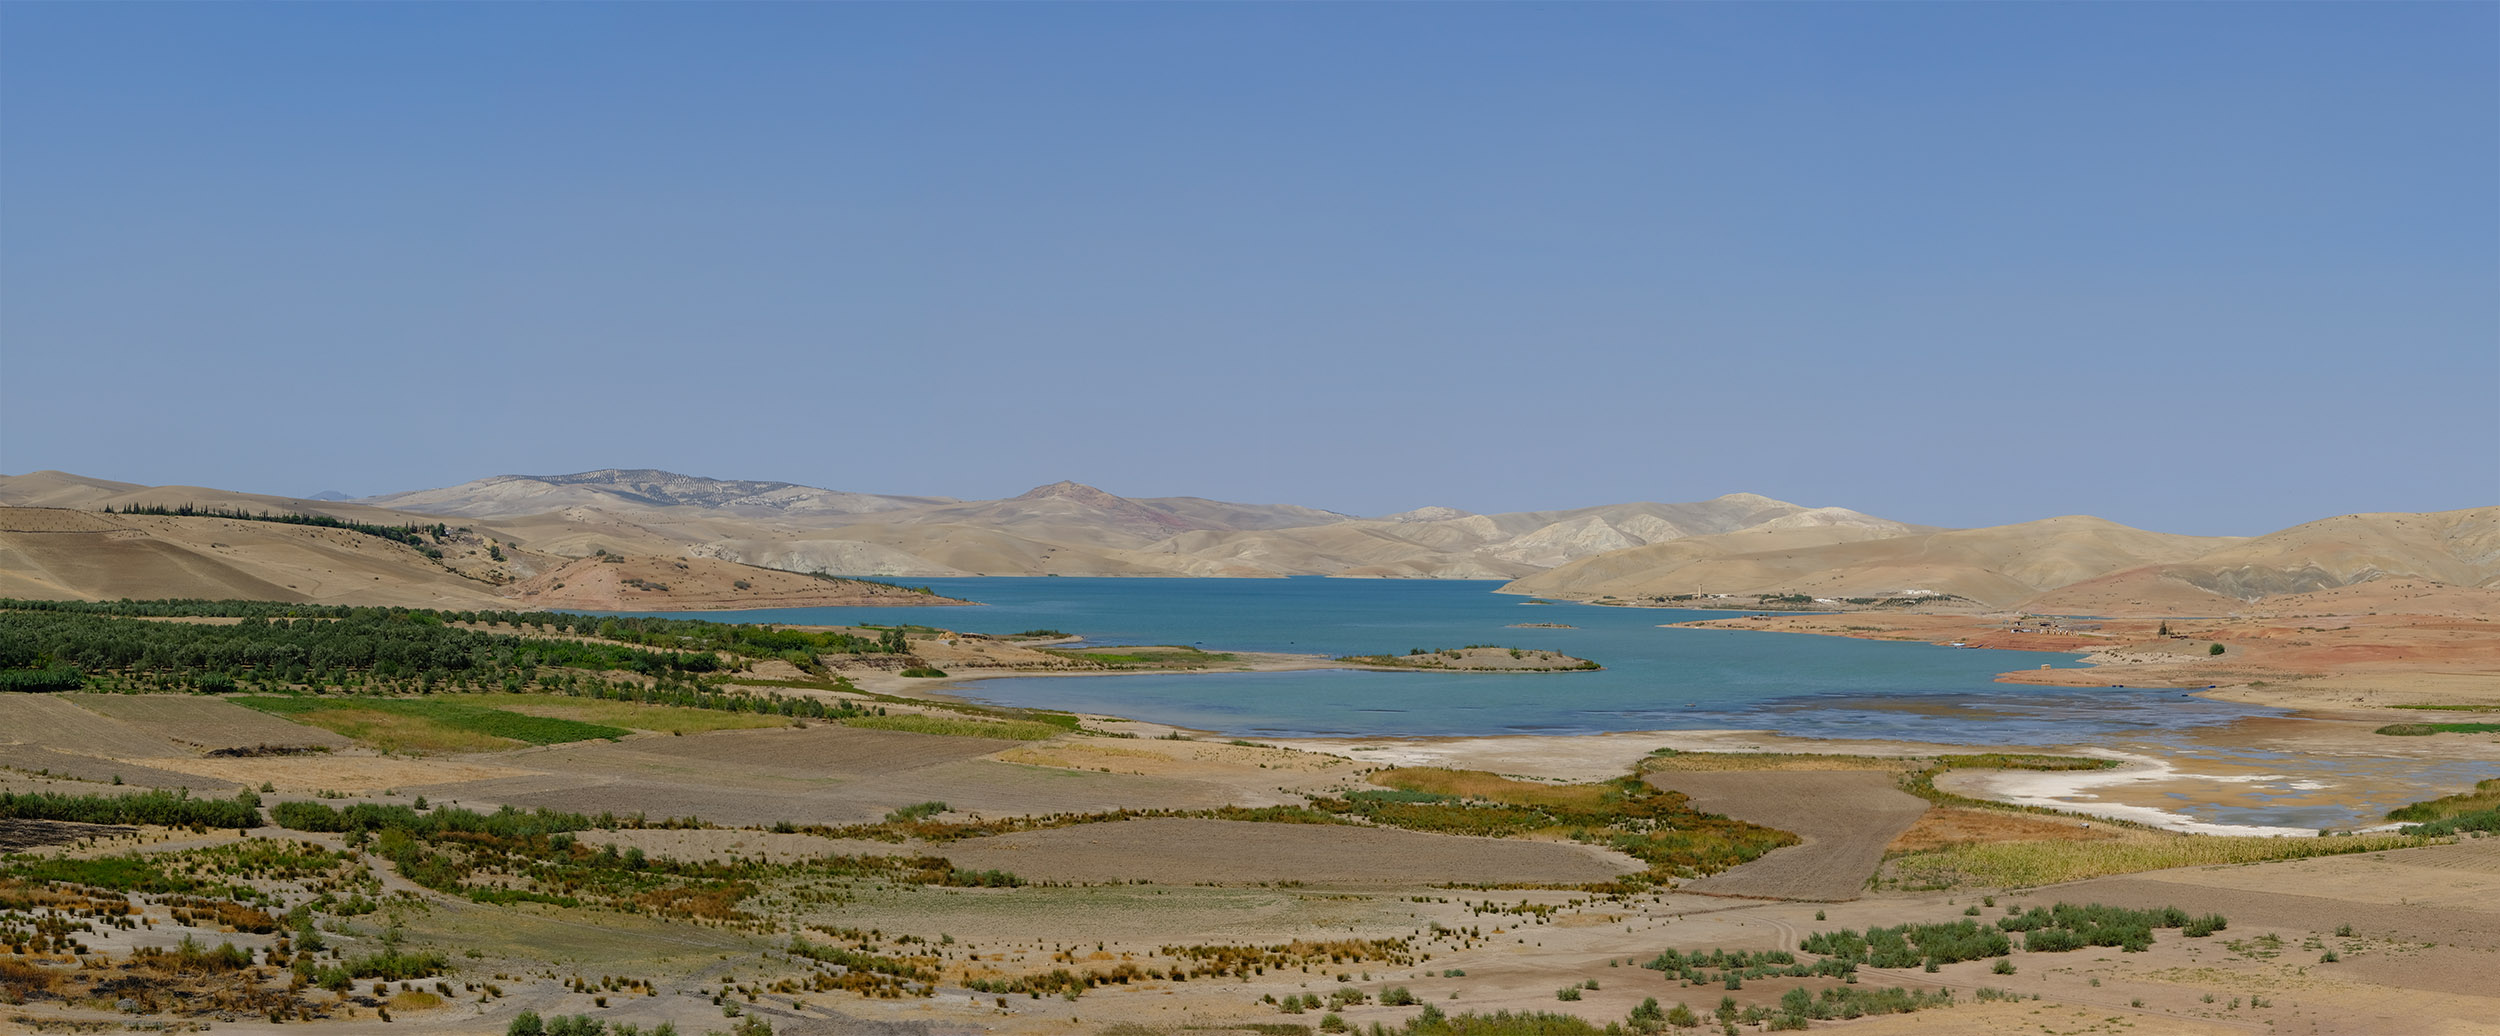 On the outskirts of Fez and Meknes, Barrage Sidi Chahed lake